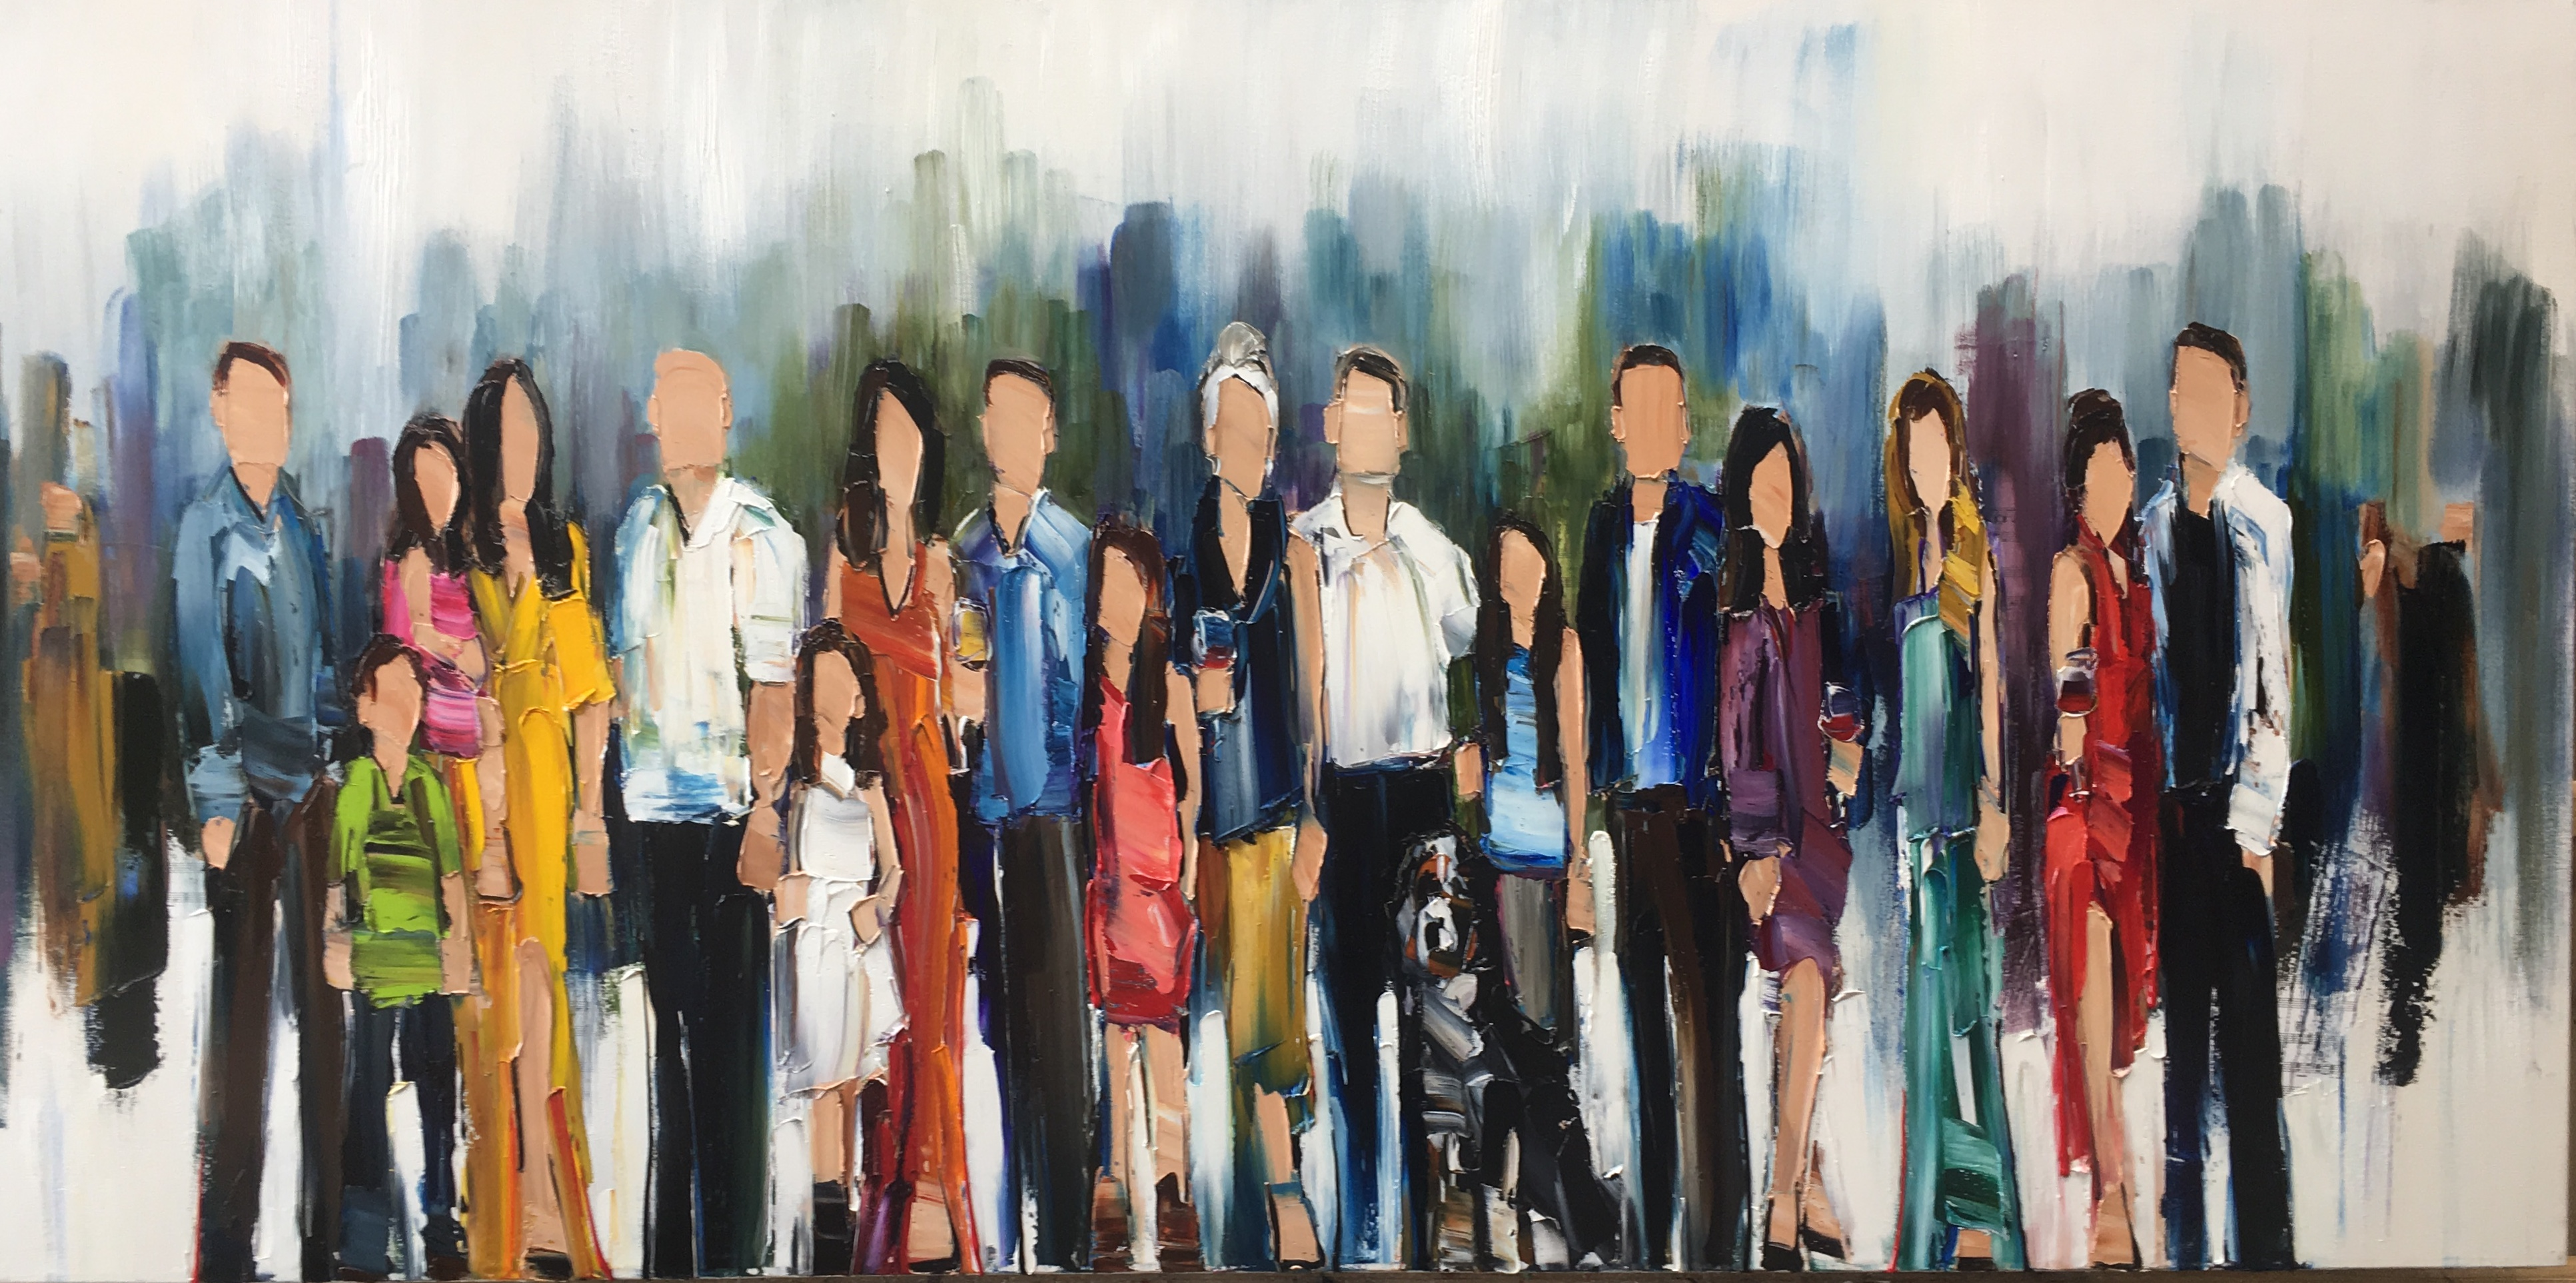 All in the Family, painting by Kimberly Kiel | Effusion Art Gallery + cast Glass Studio, Invermere BC